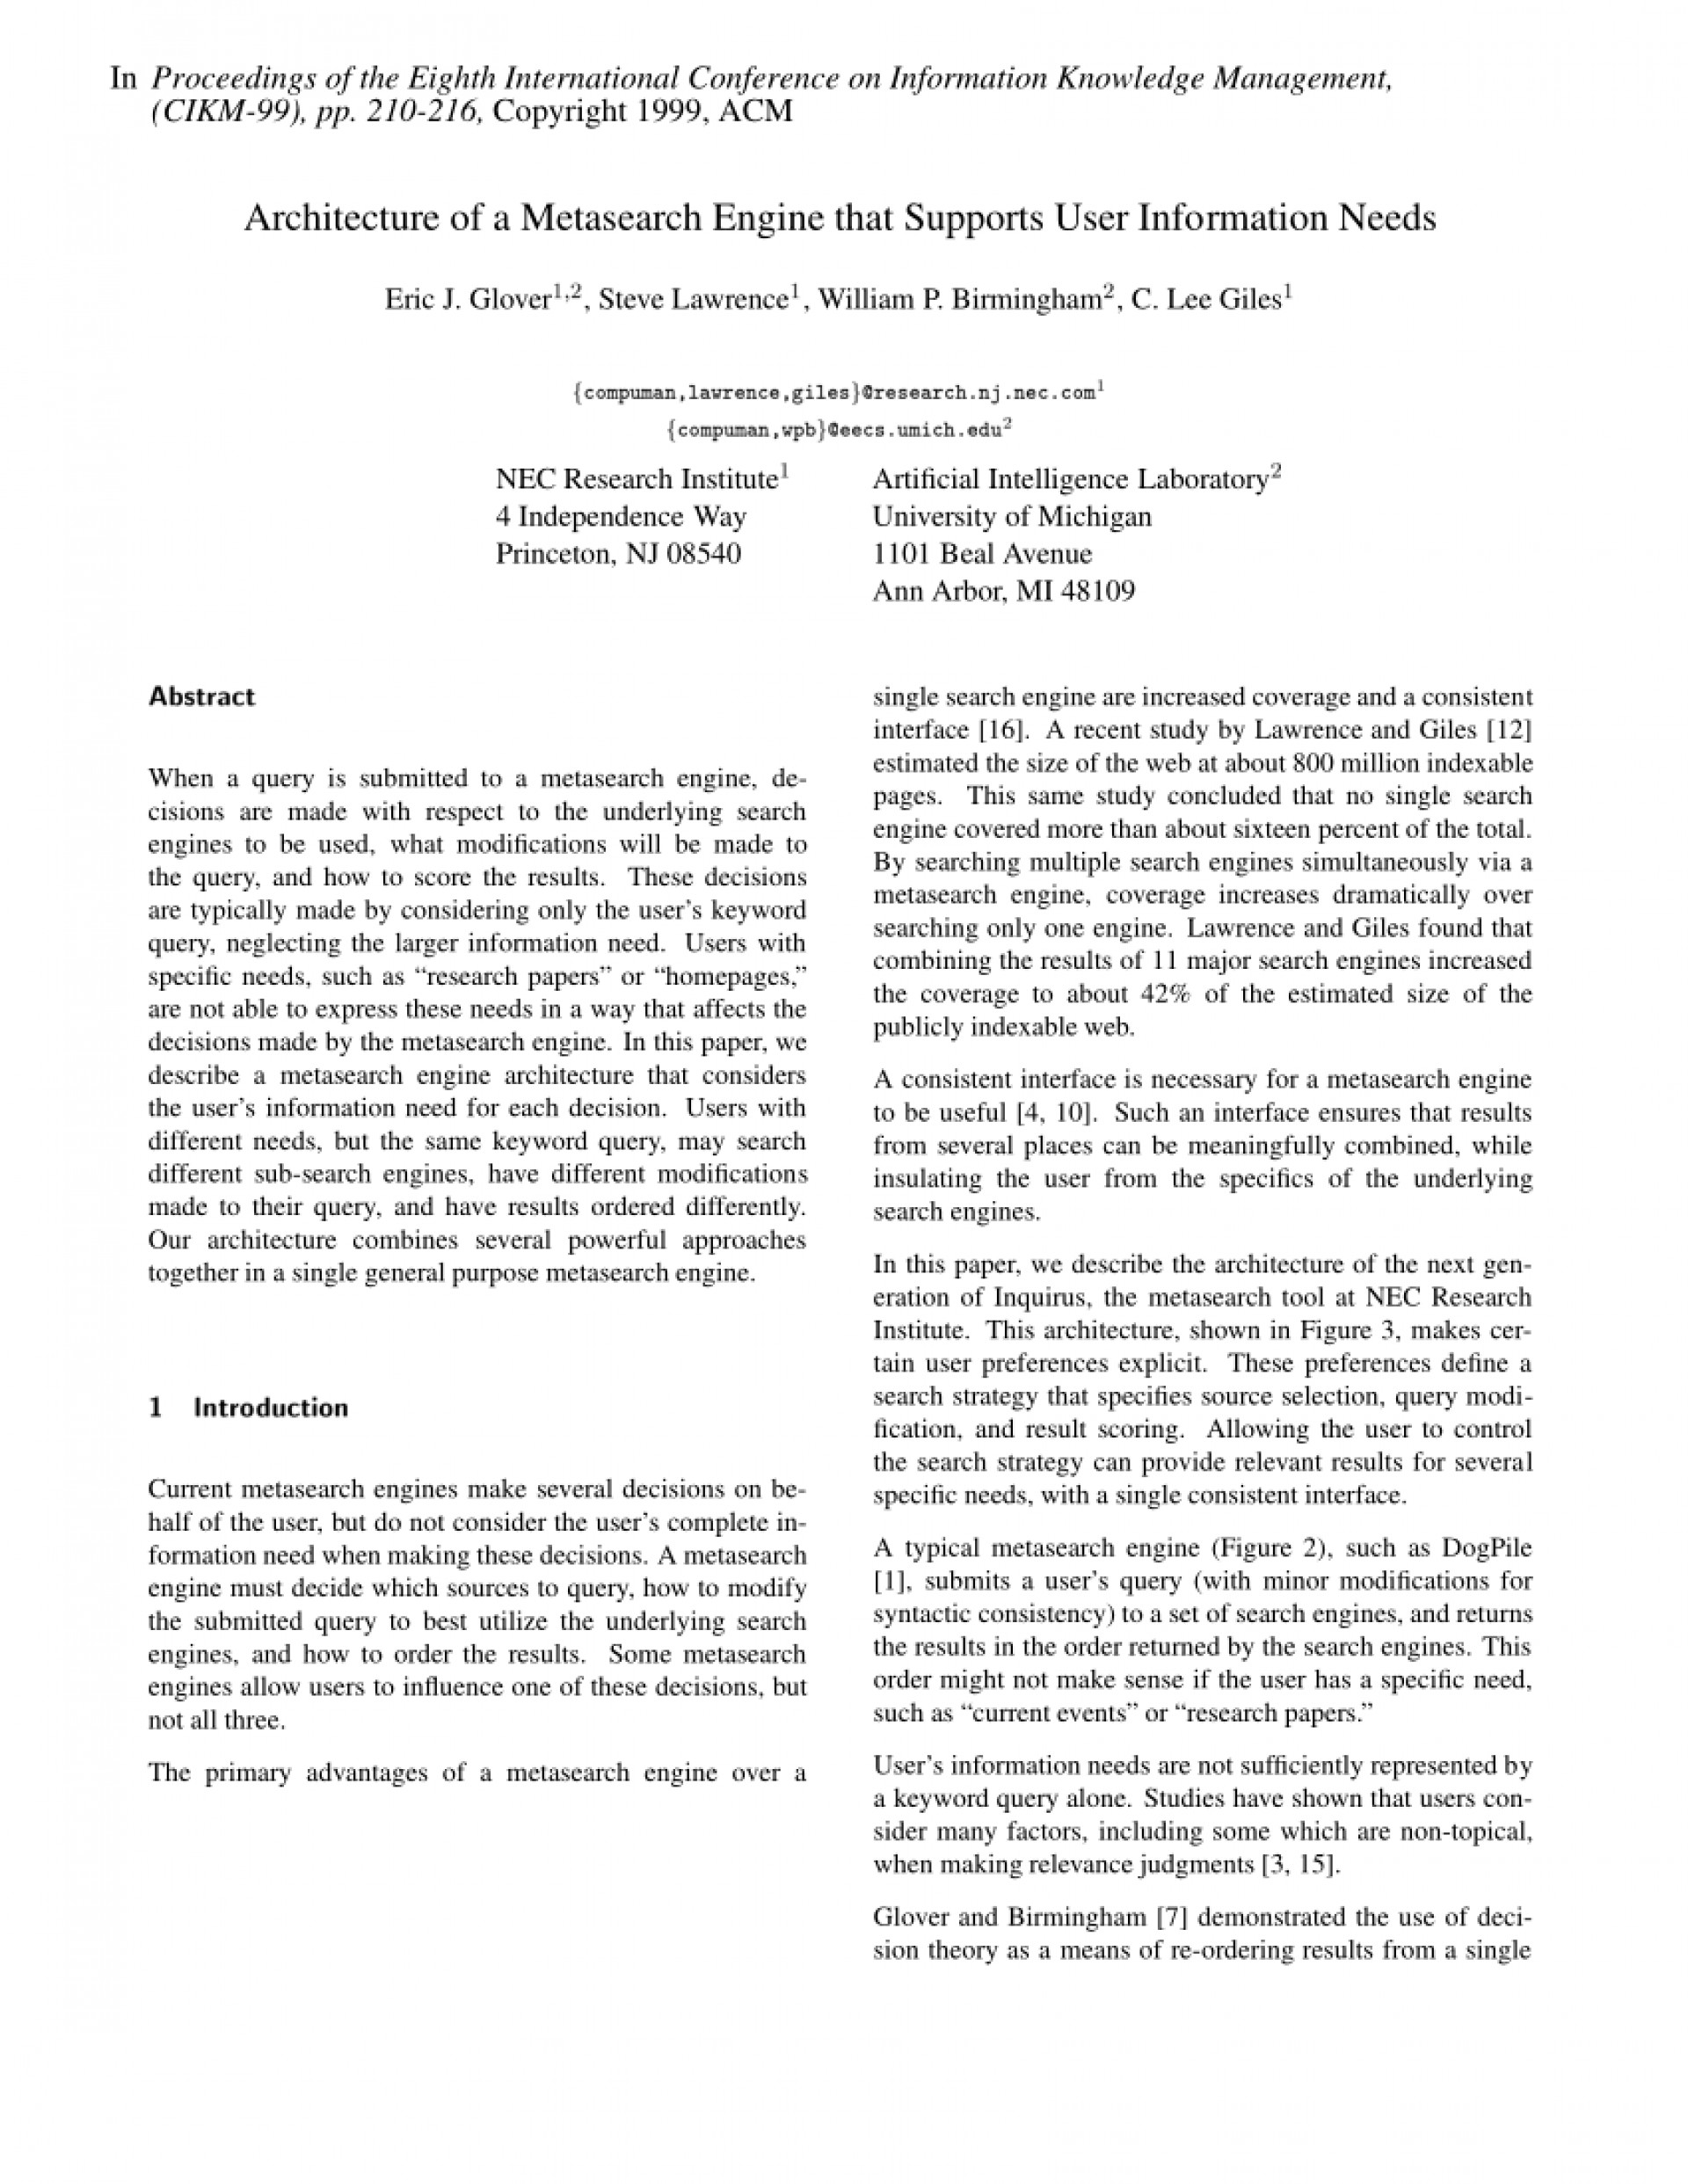 014 Meta Search Engine Research Paper Formidable 1920